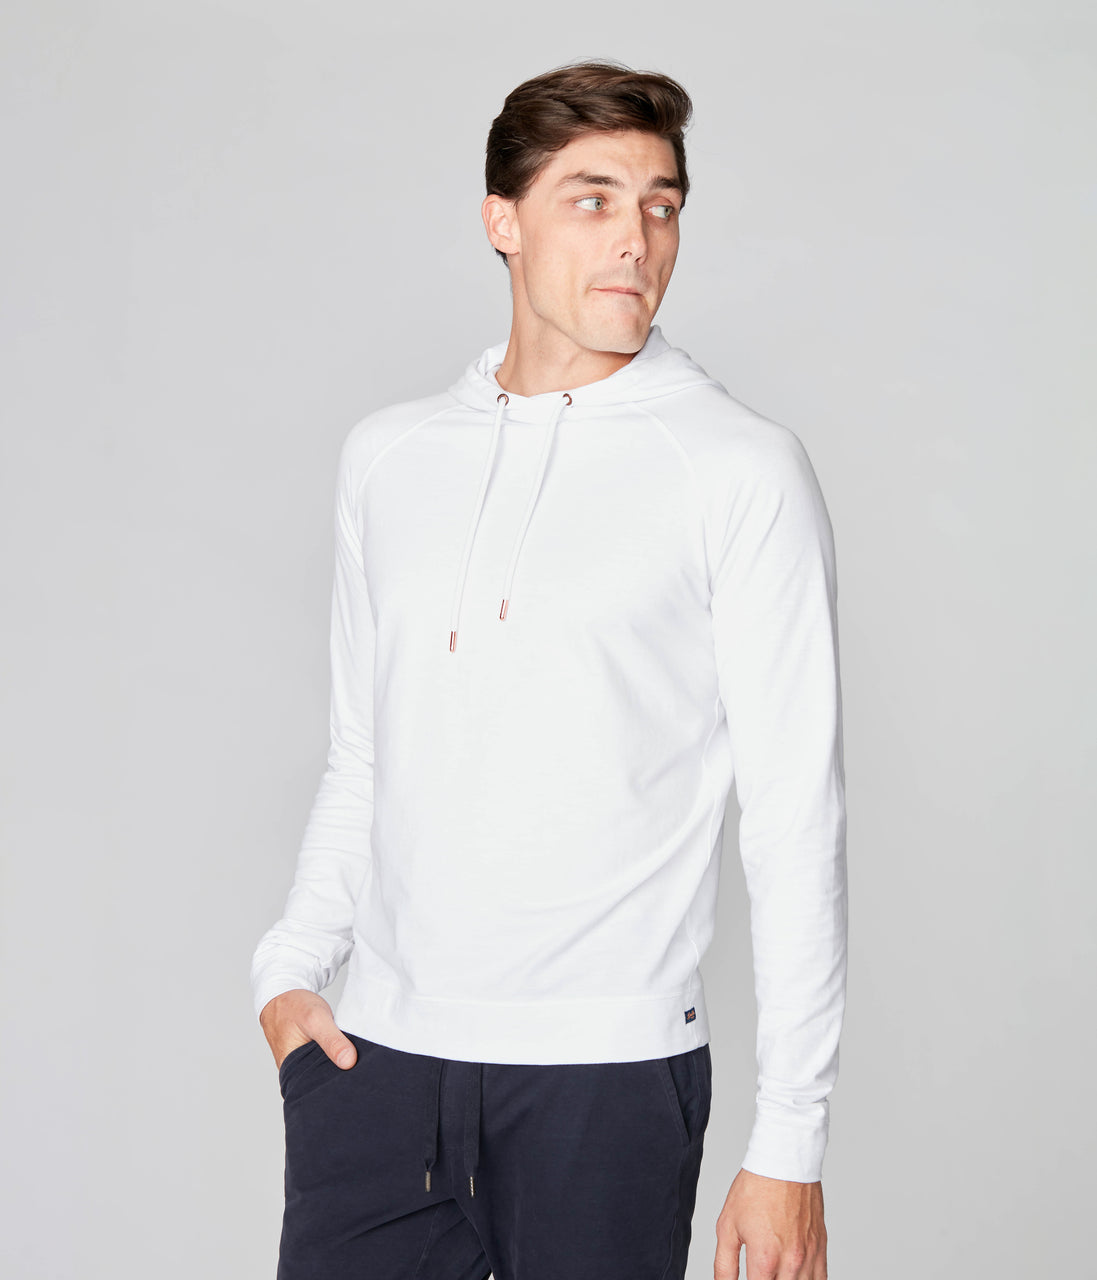 Legend Hoodie in Soft Slub Jersey - White - Good Man Brand - Legend Hoodie in Soft Slub Jersey - White